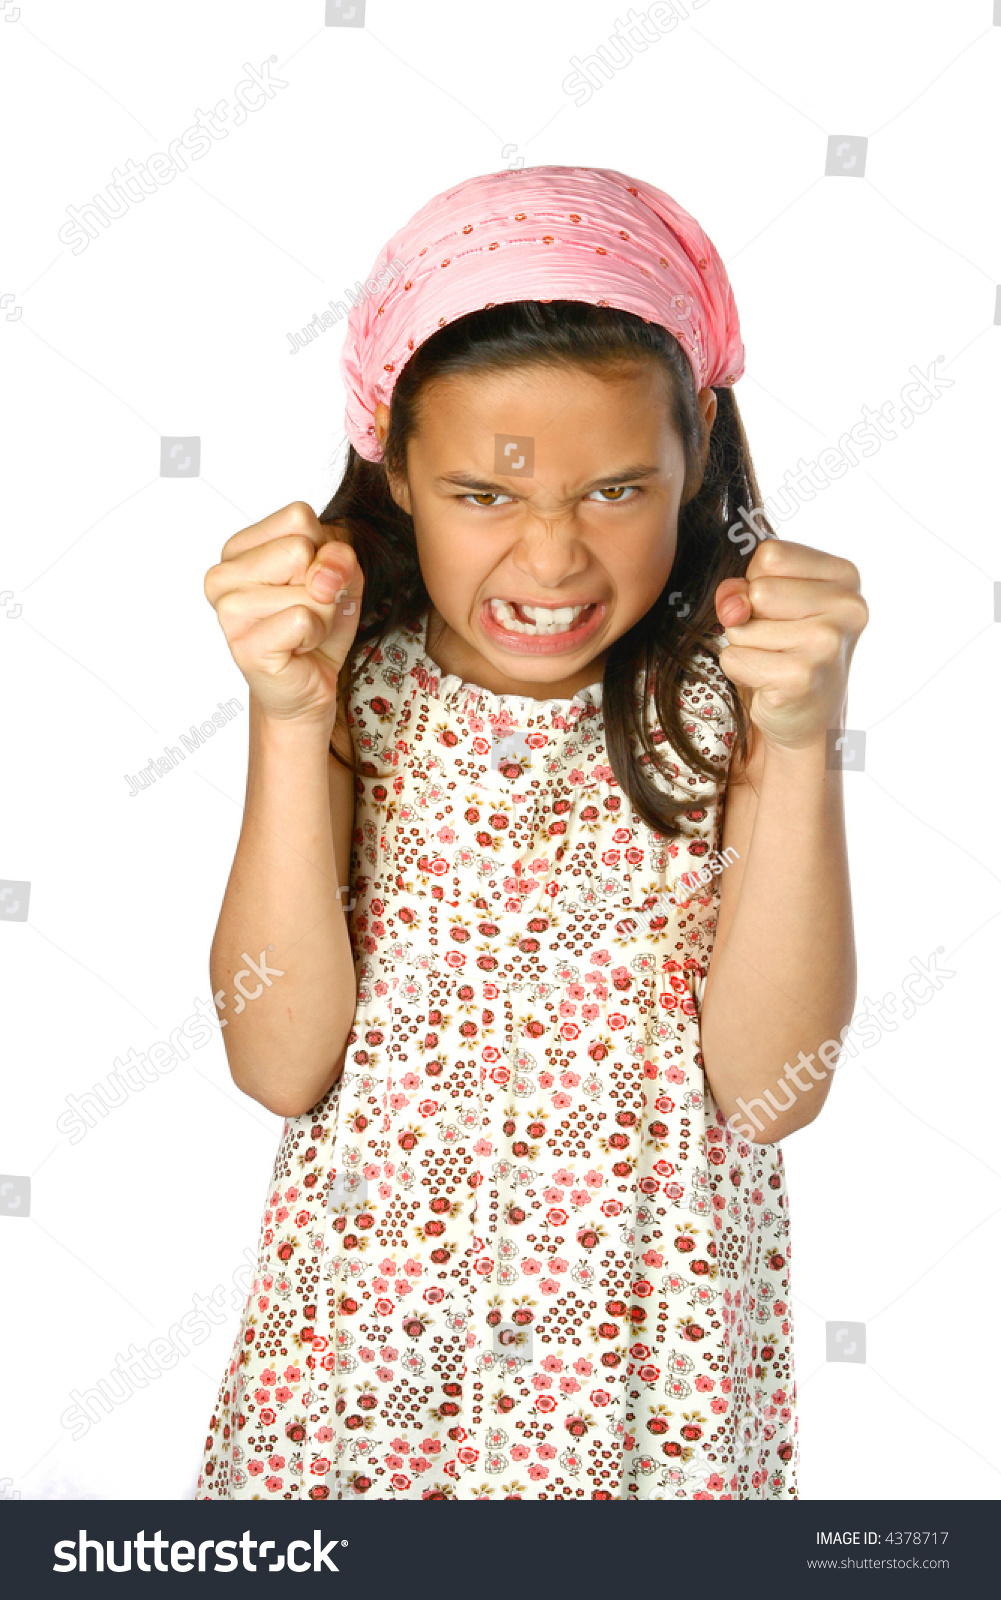 Young girl with both hands in fist showing anger,frustration and  displeasure on her face